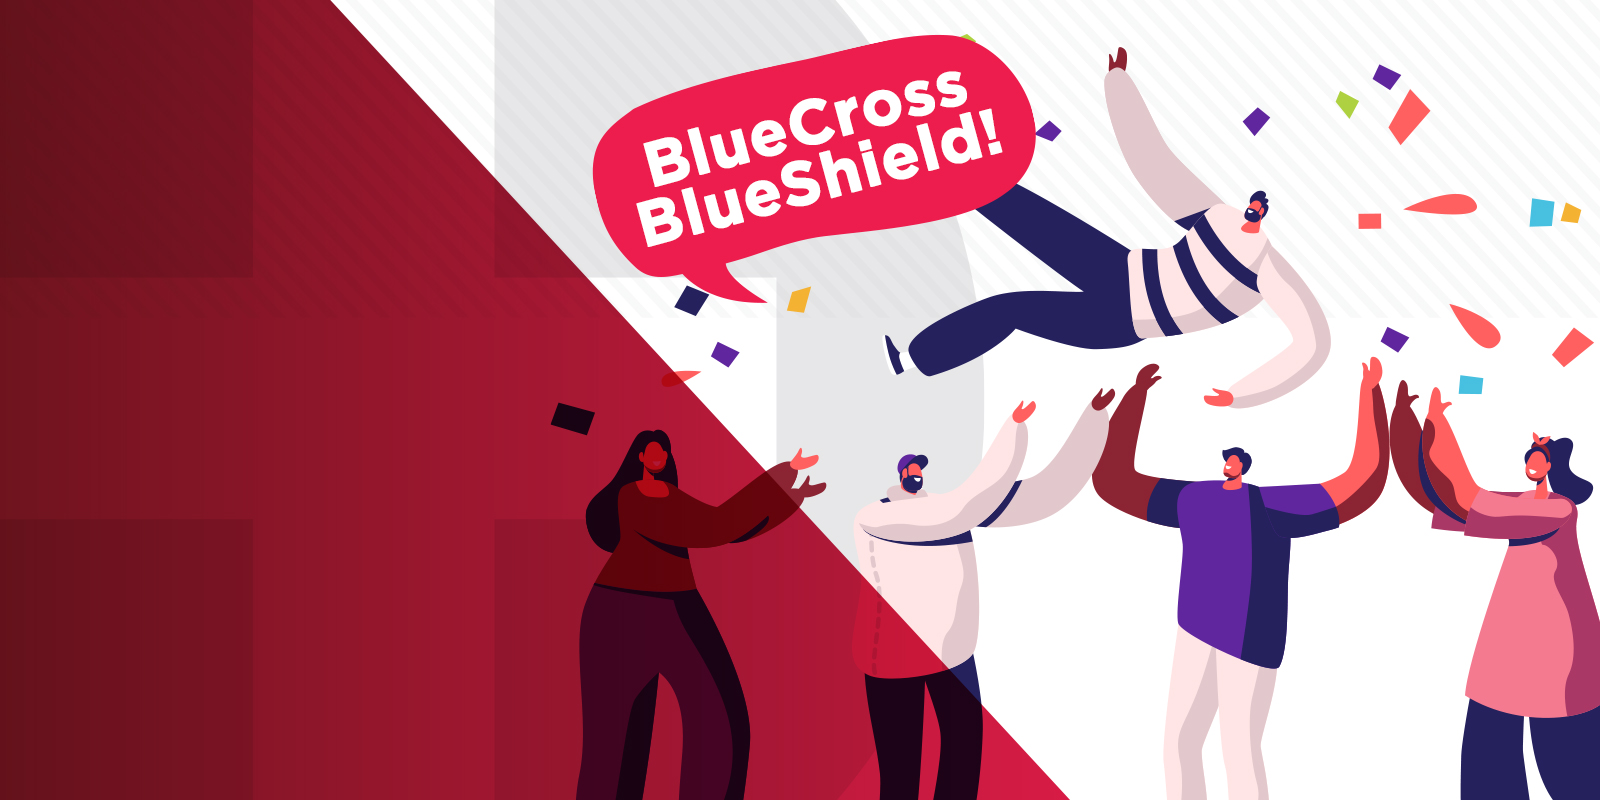 in-network with BlueCross BlueShield